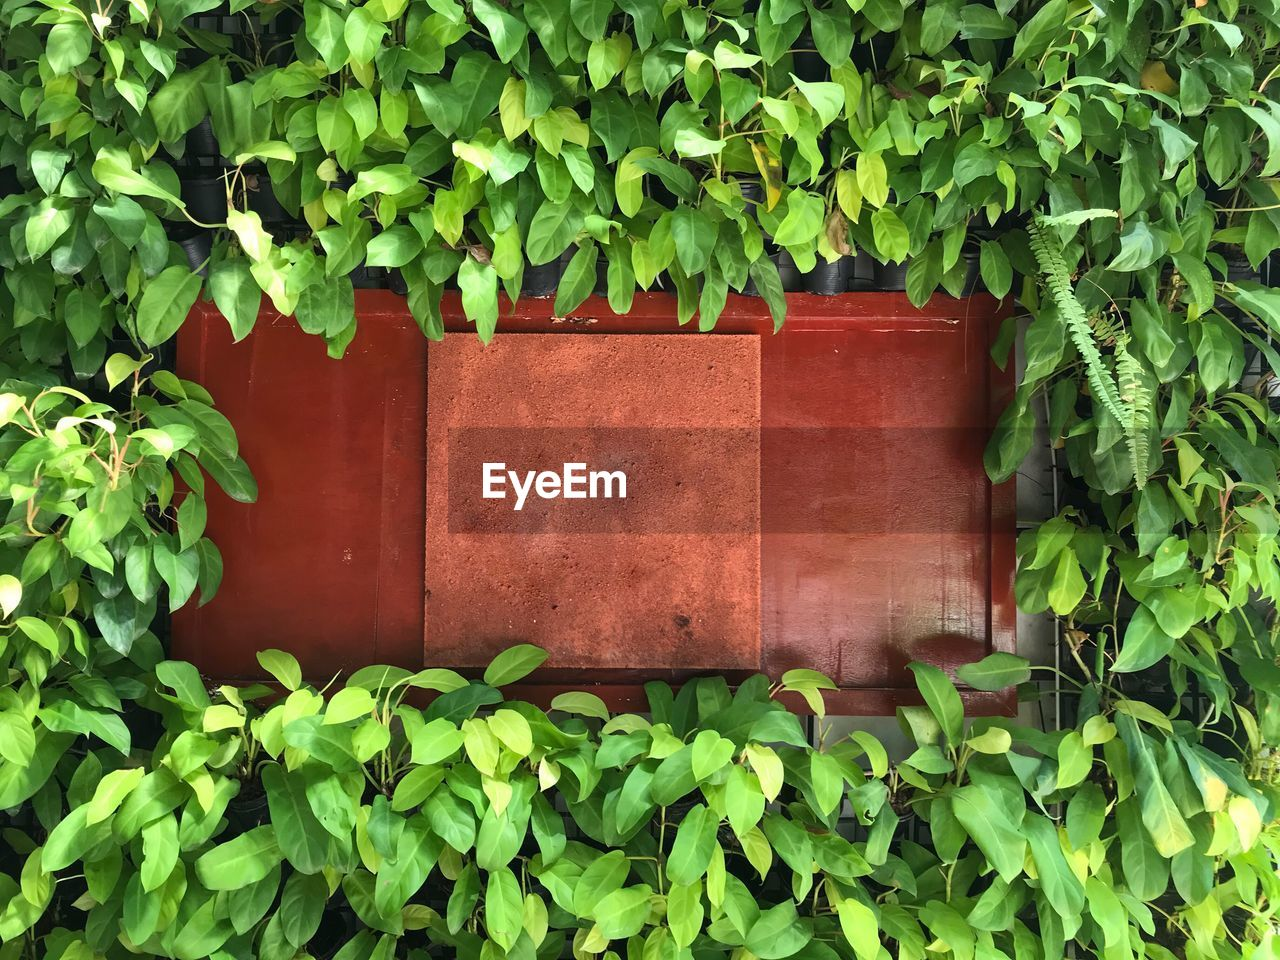 plant, green color, growth, plant part, leaf, nature, day, no people, outdoors, ivy, architecture, creeper plant, red, container, brown, beauty in nature, built structure, close-up, box, wood - material